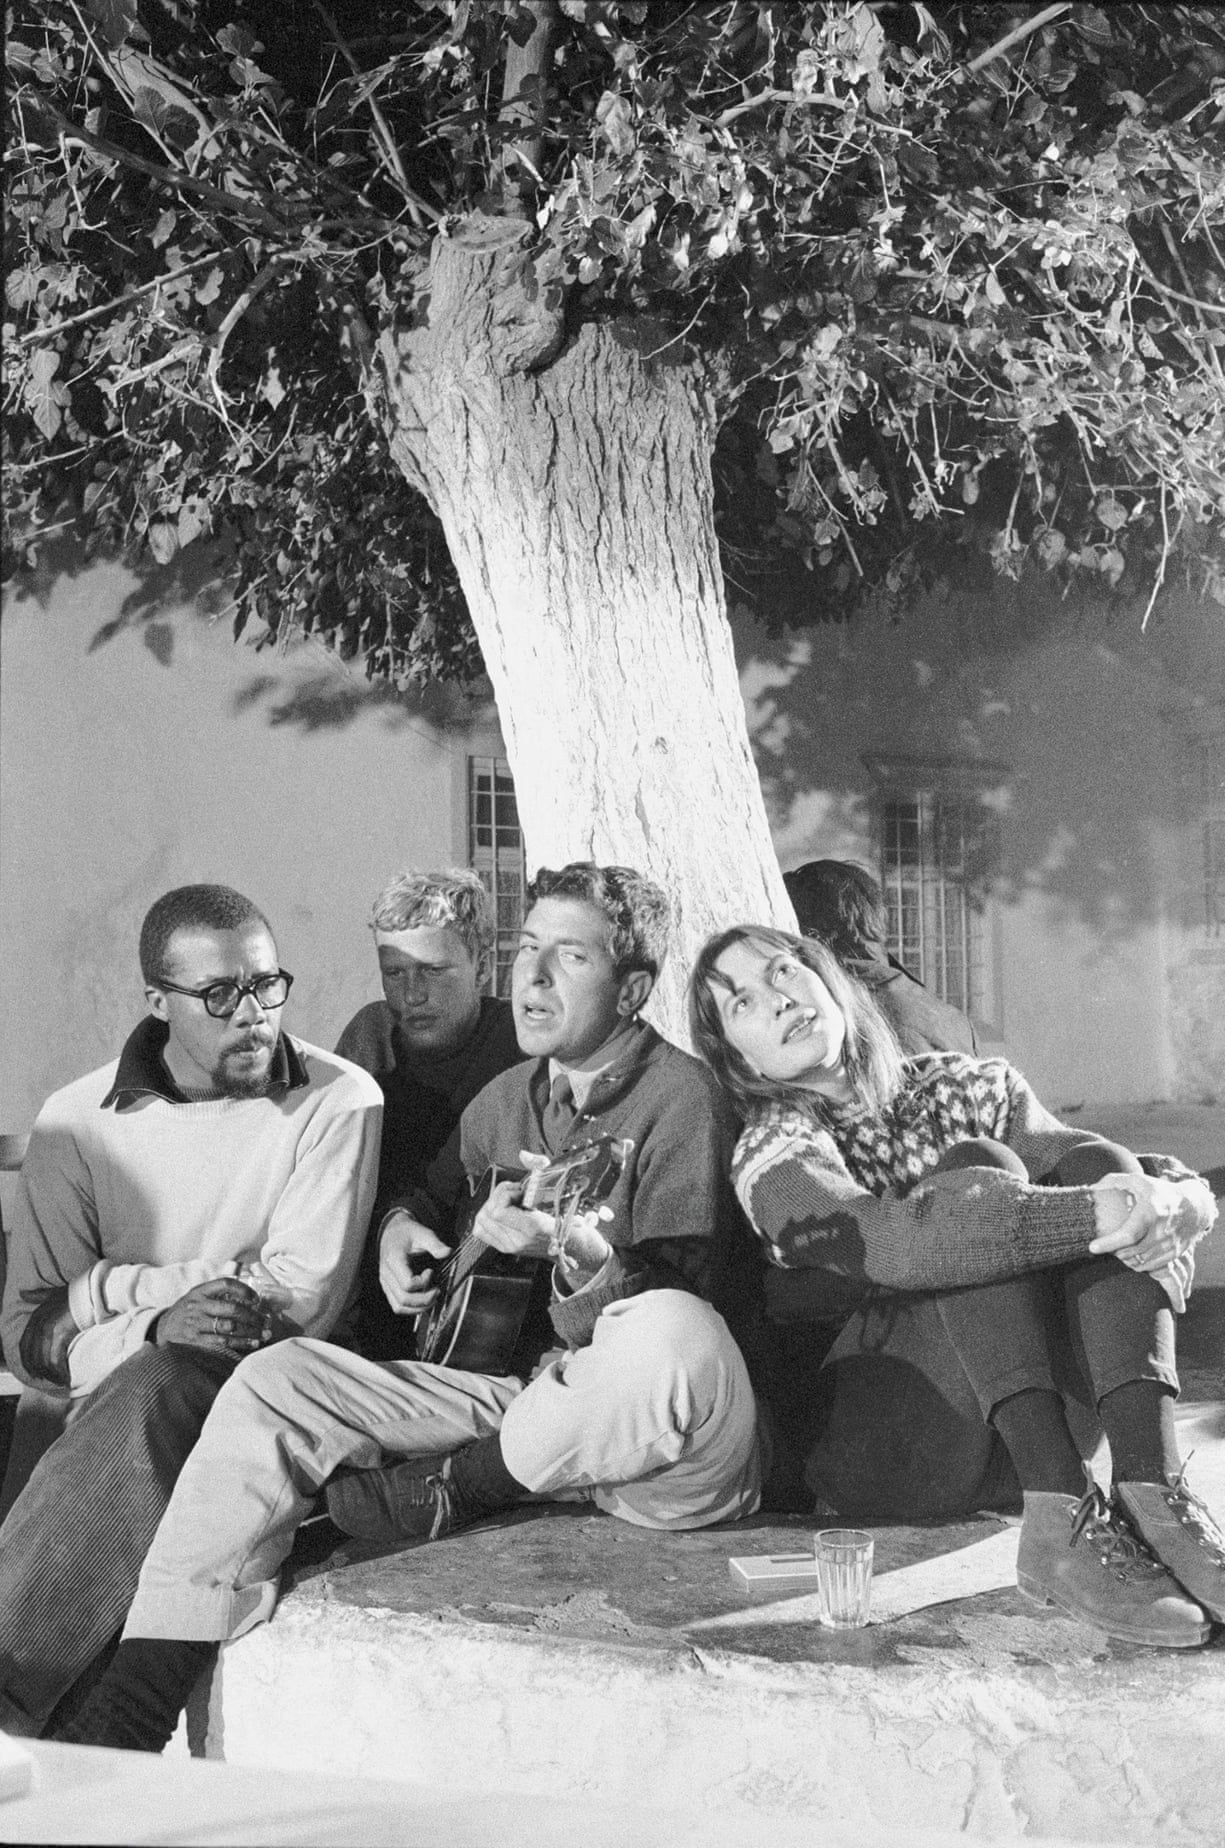 Leonard Cohen and his friends, 1964, Under the tree - which is now located in front of the Xeri Elia Tavern's platia.